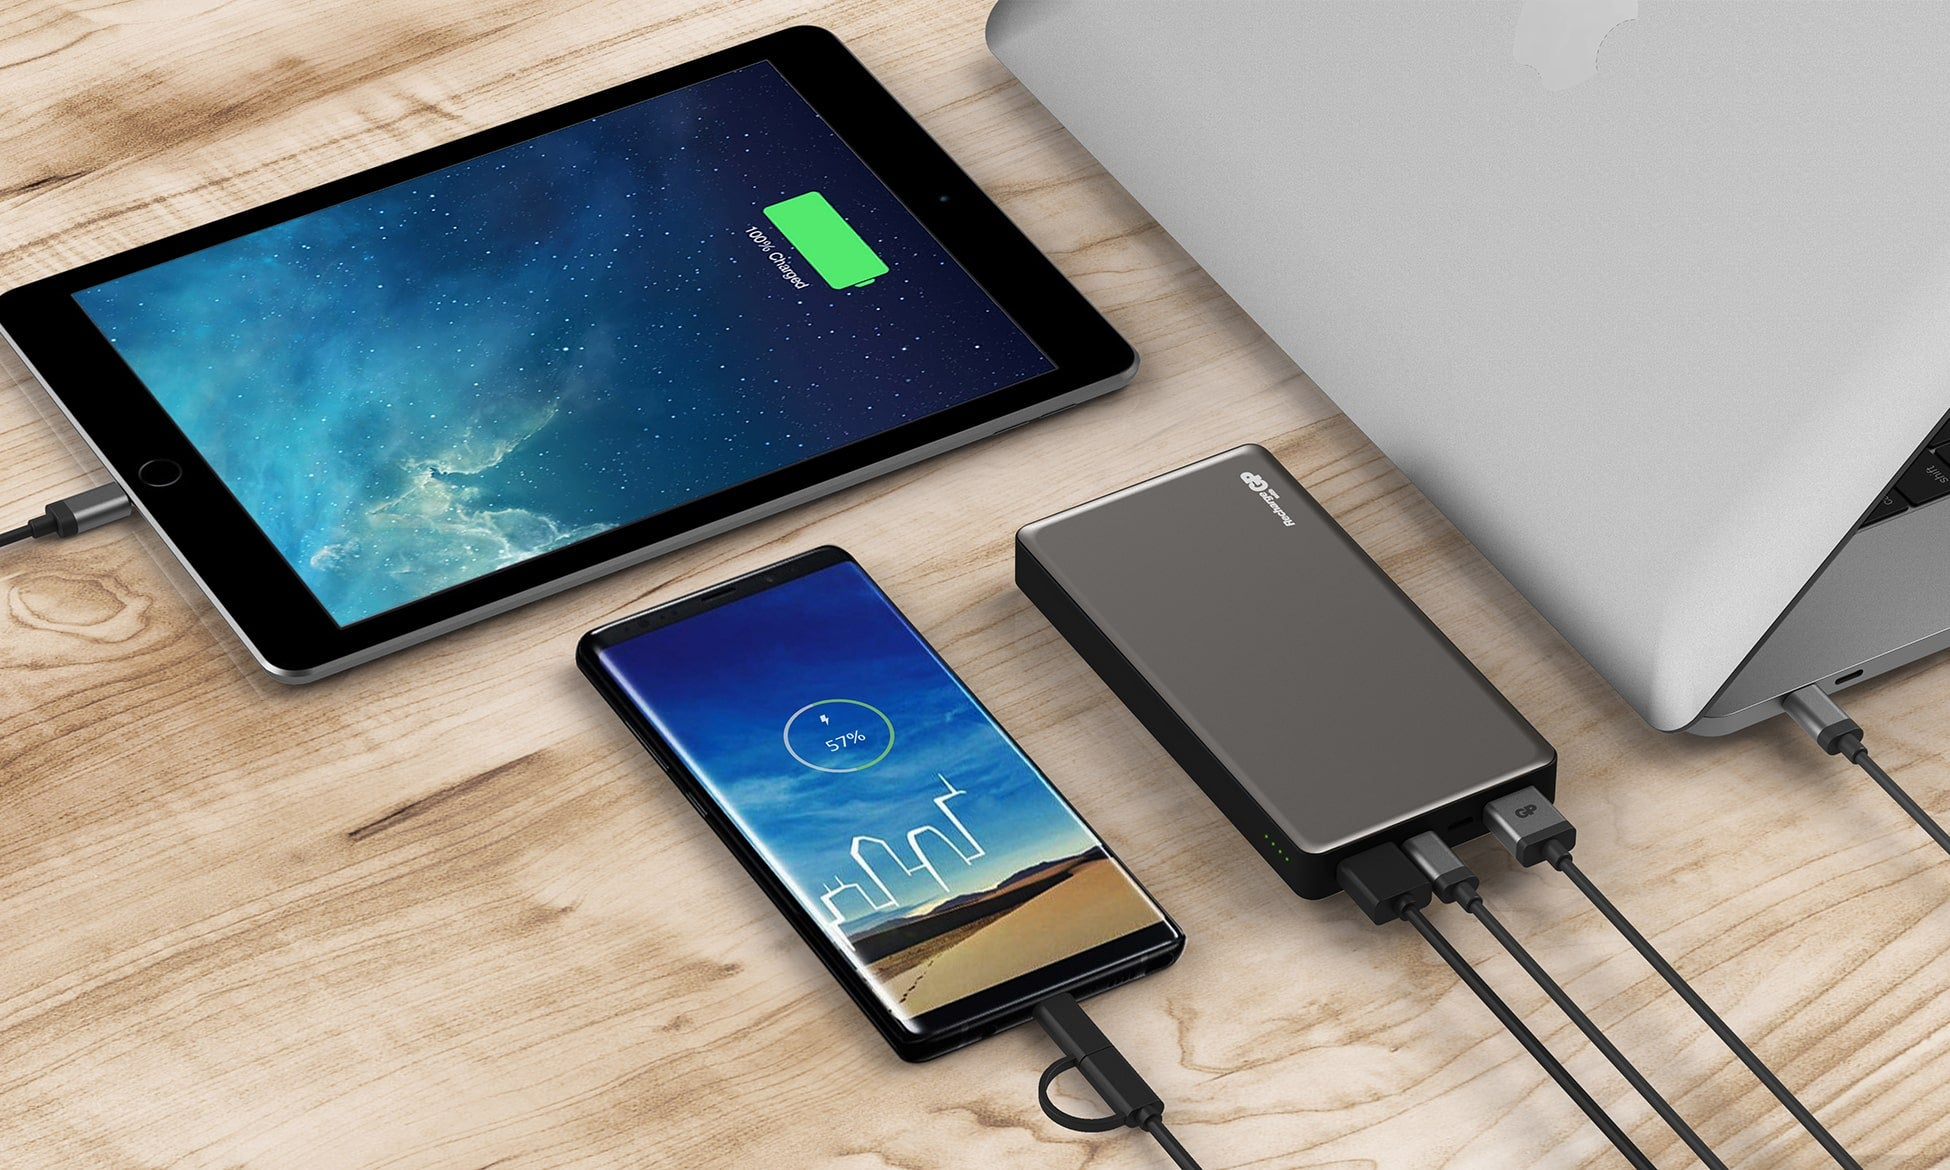 gp powerbank mobile charger - ipad and smart phone charging